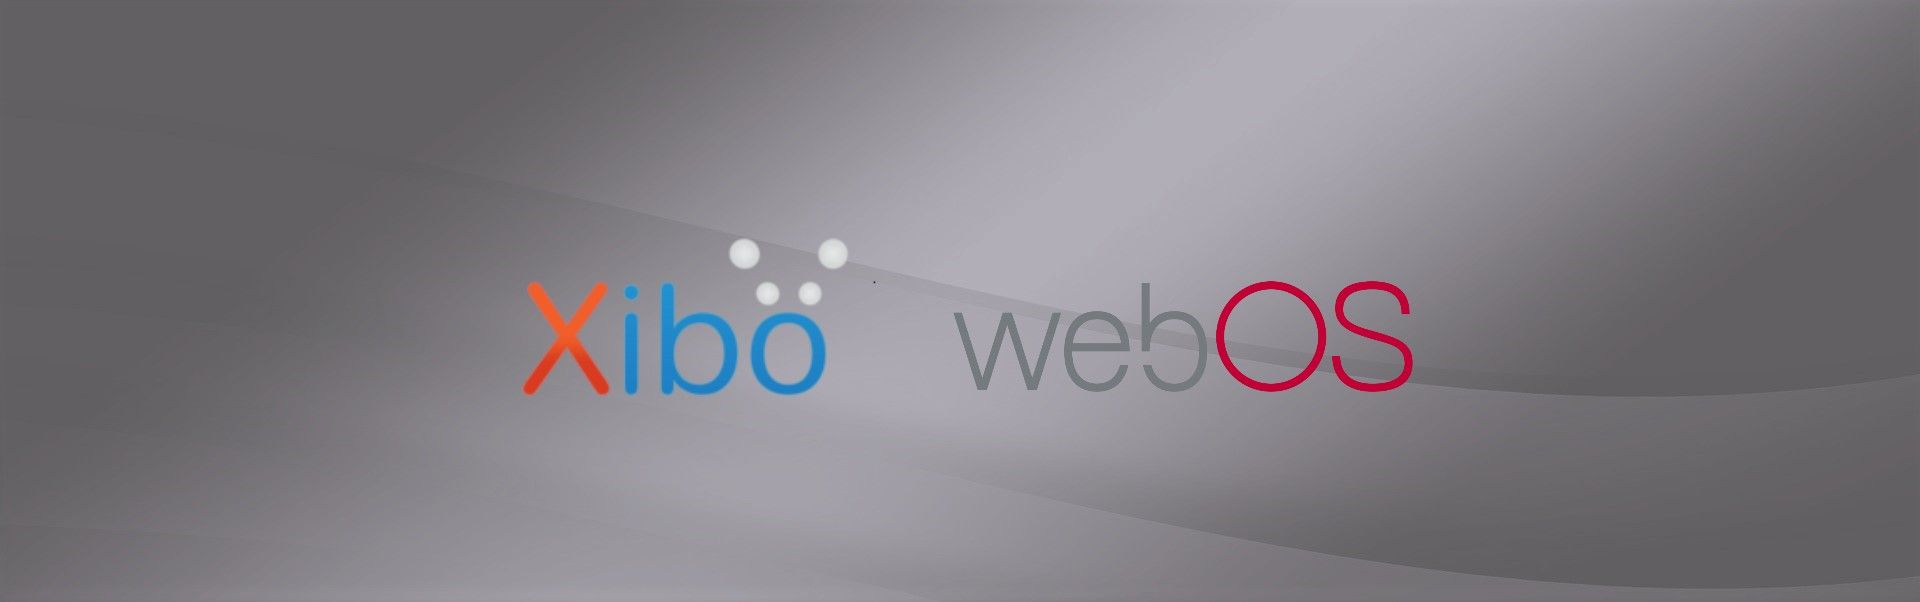 Xibo for webOS on Transparent OLED!